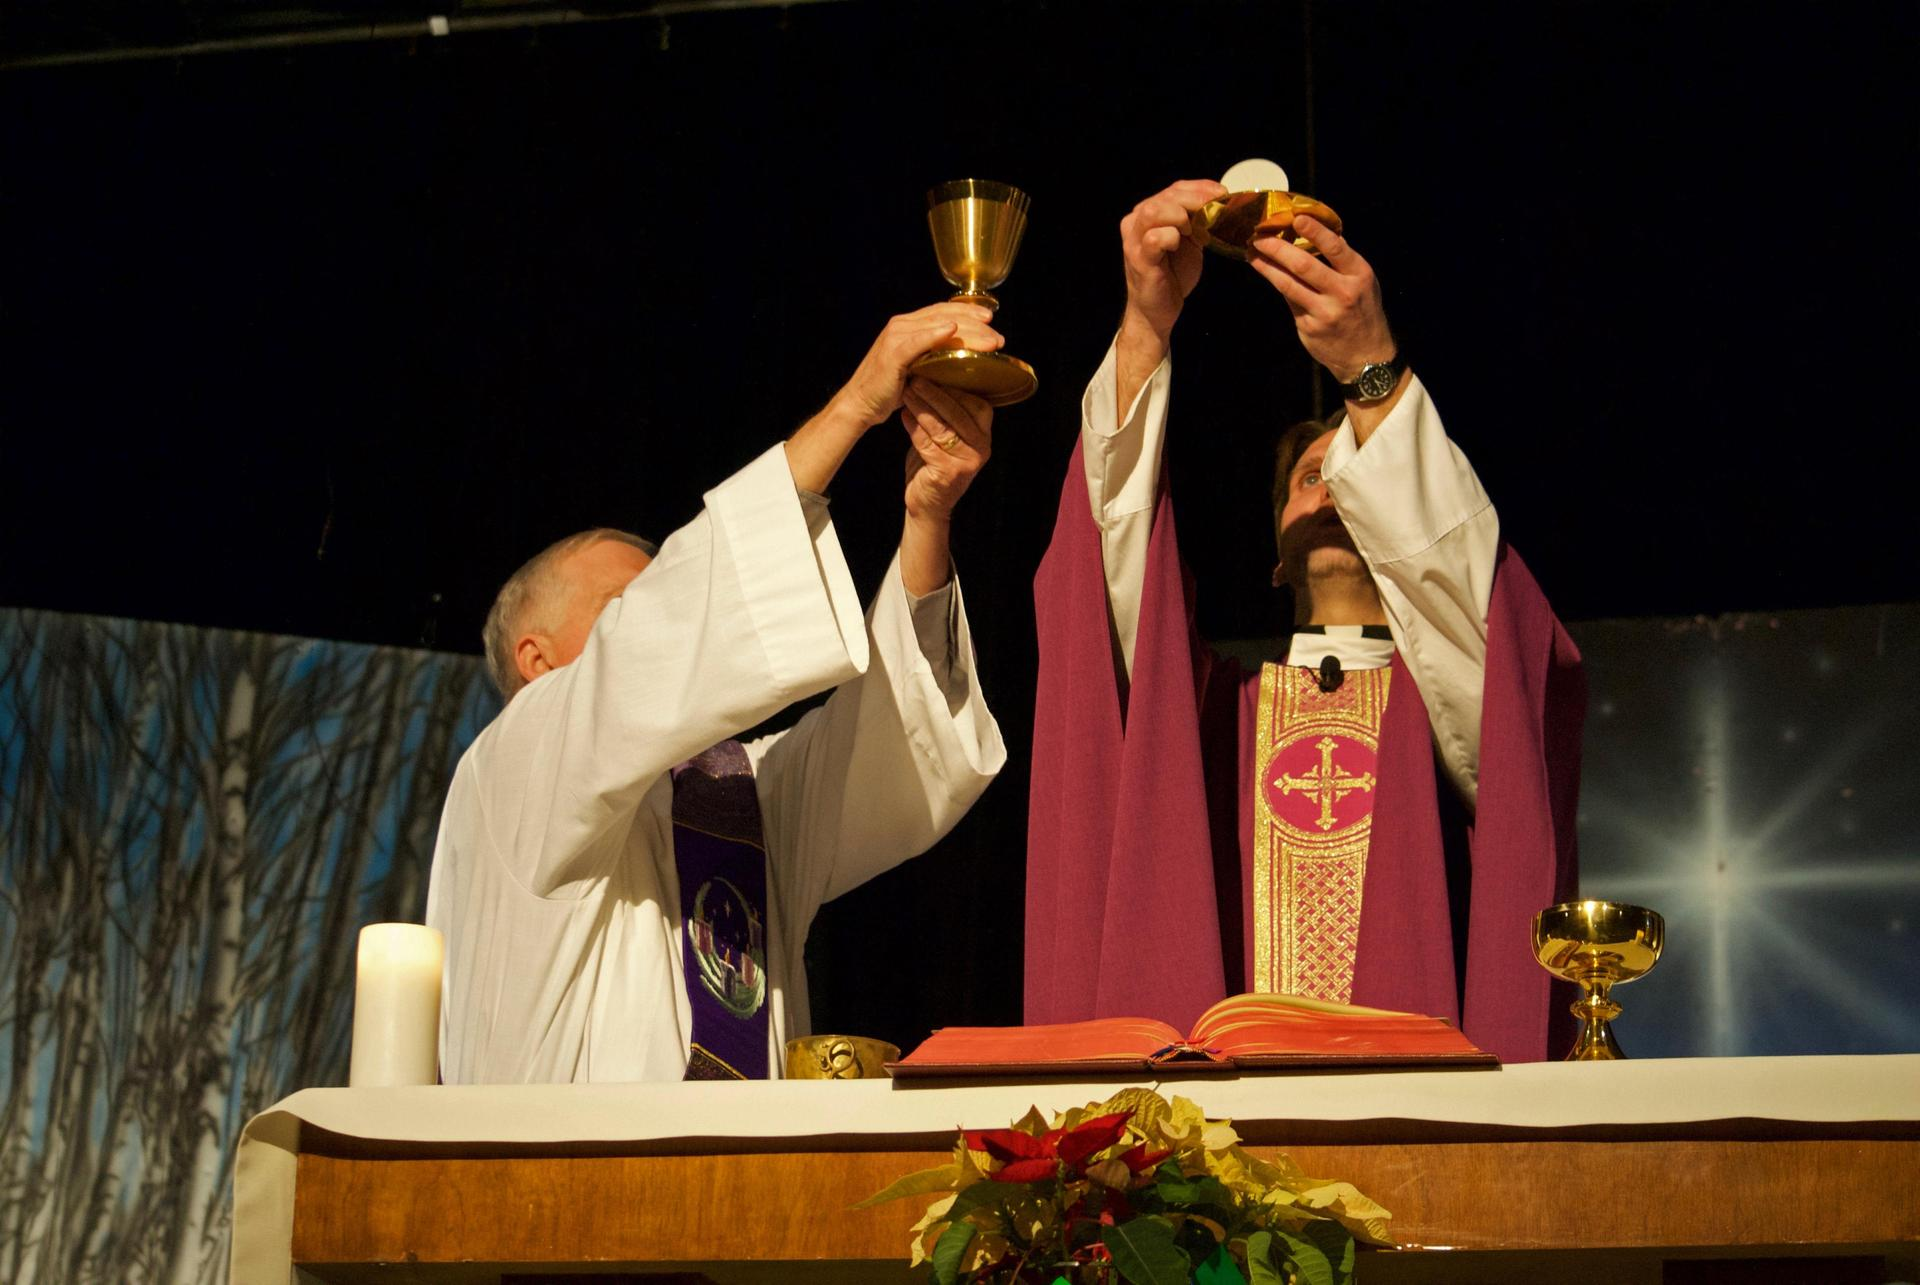 Mass celebrated at school